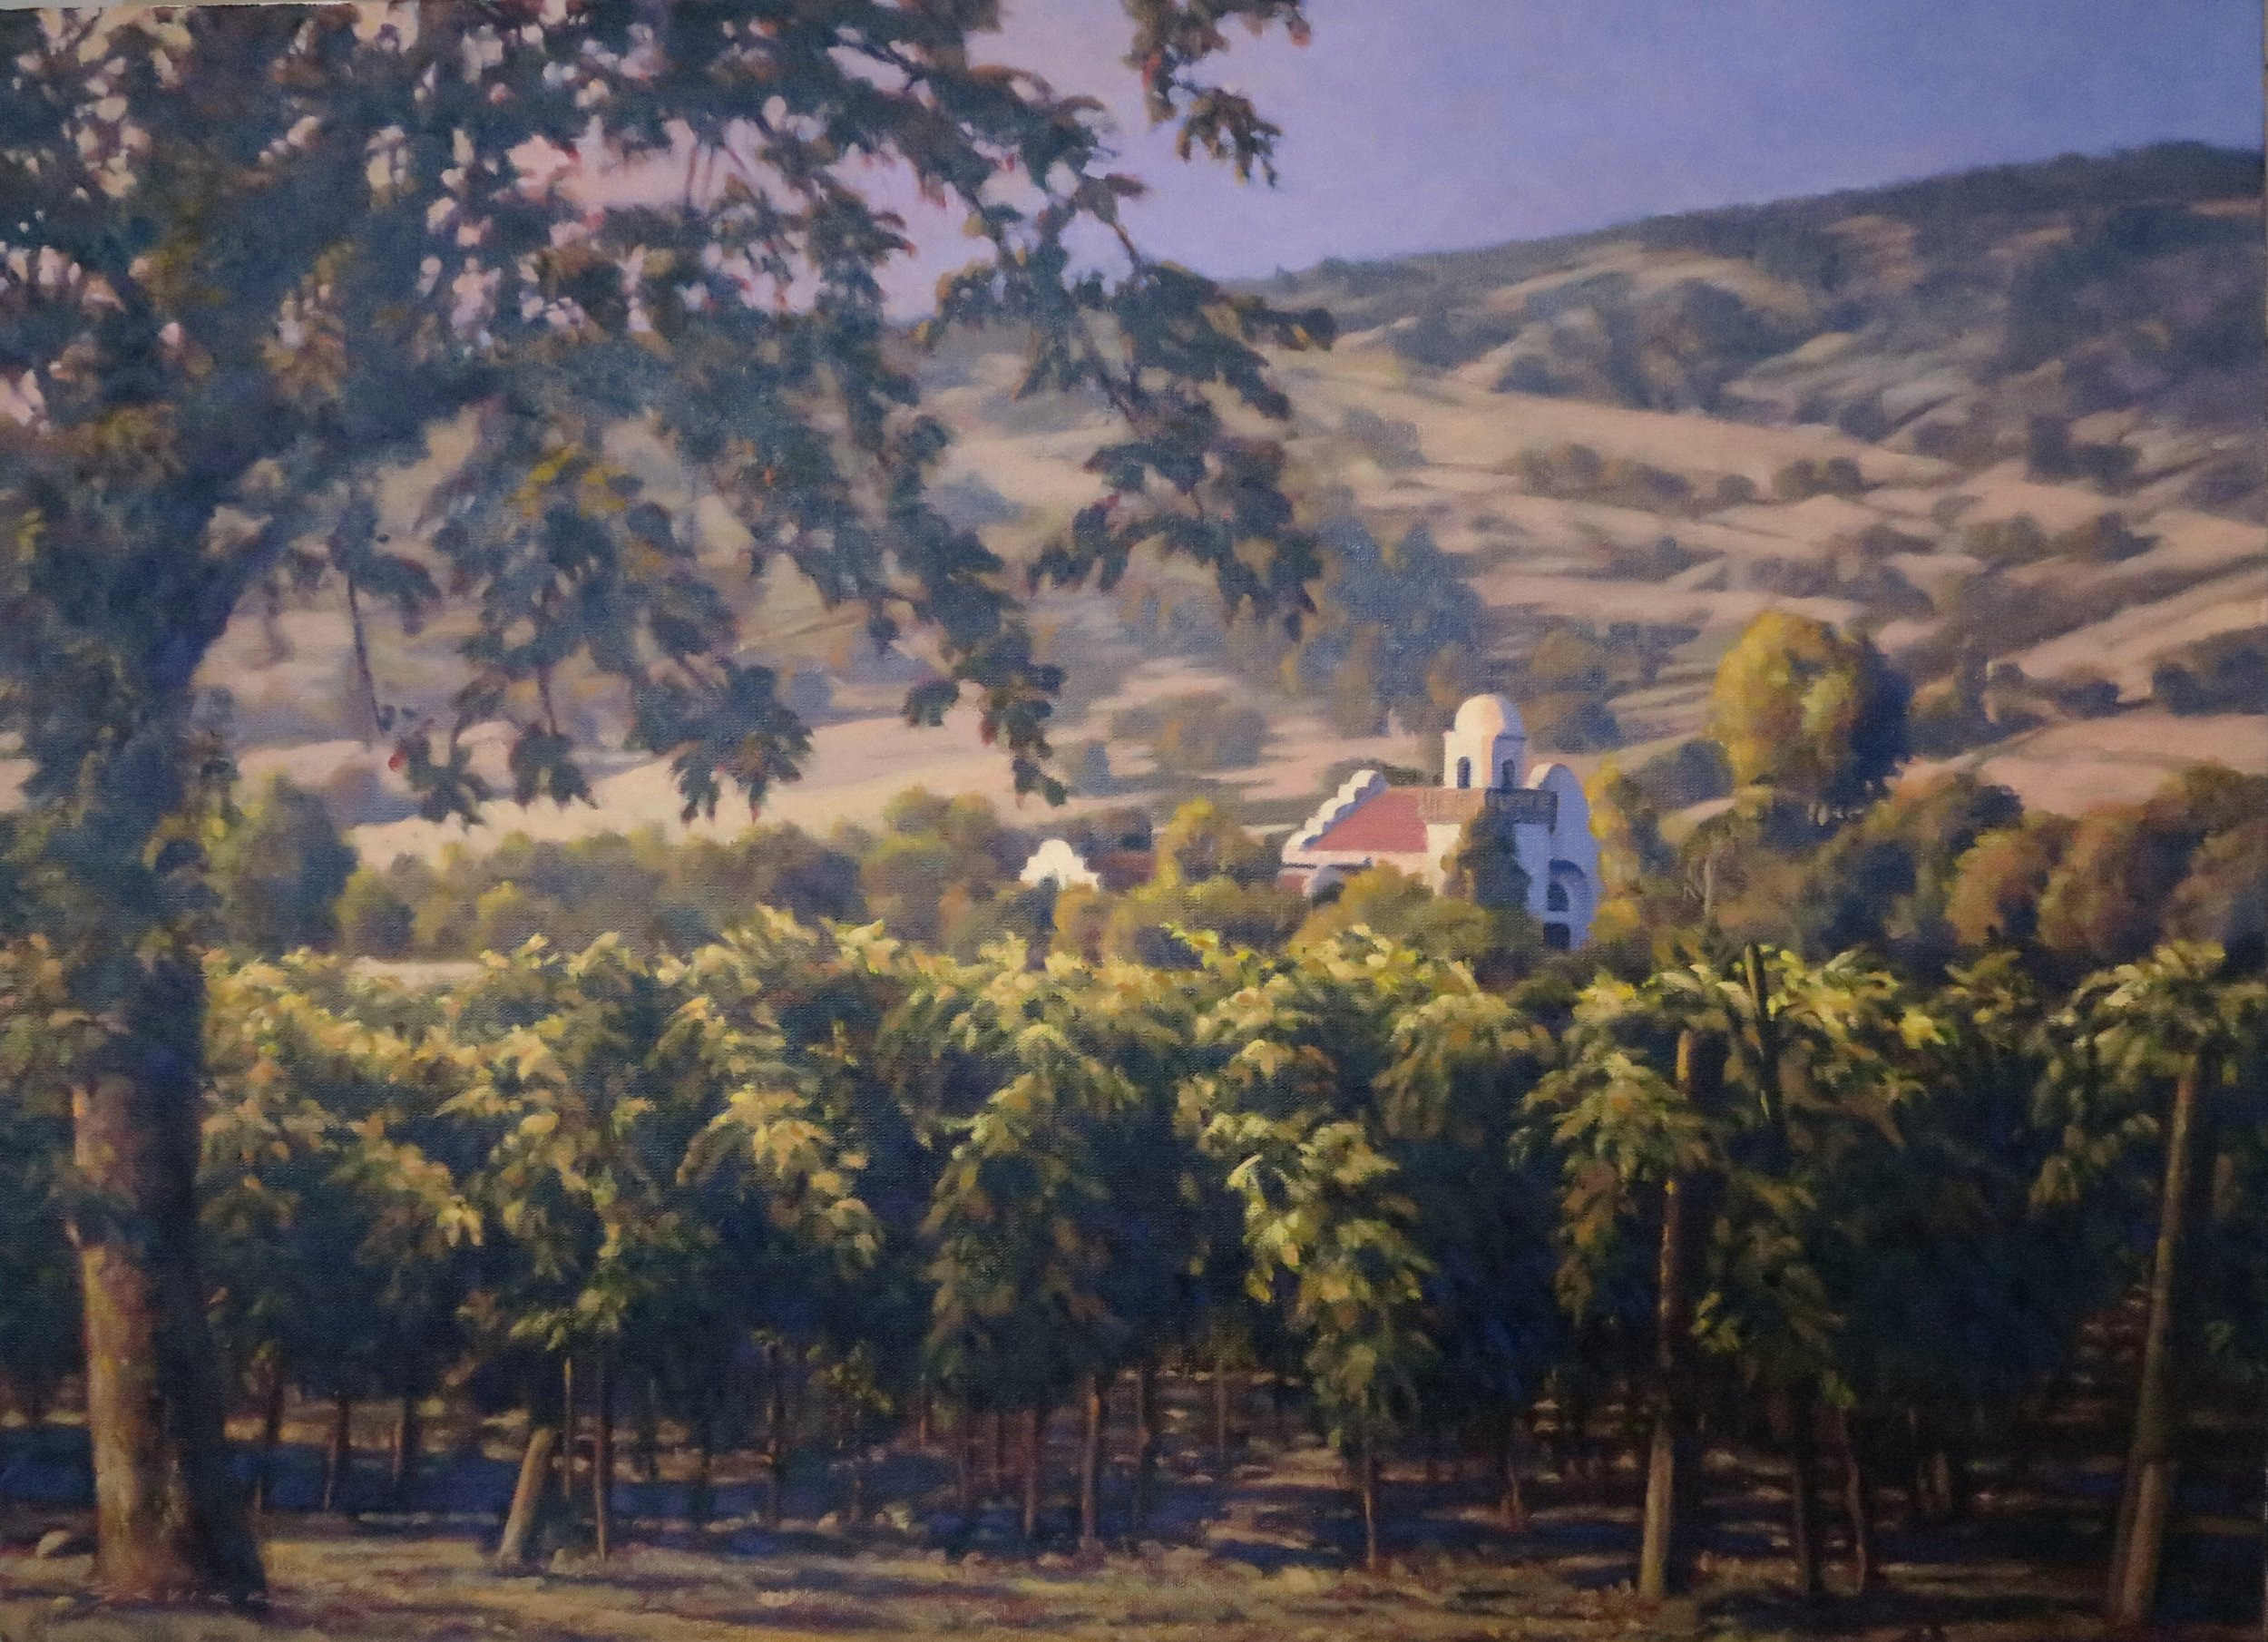 Groth/Napa, 22 x 30, oil